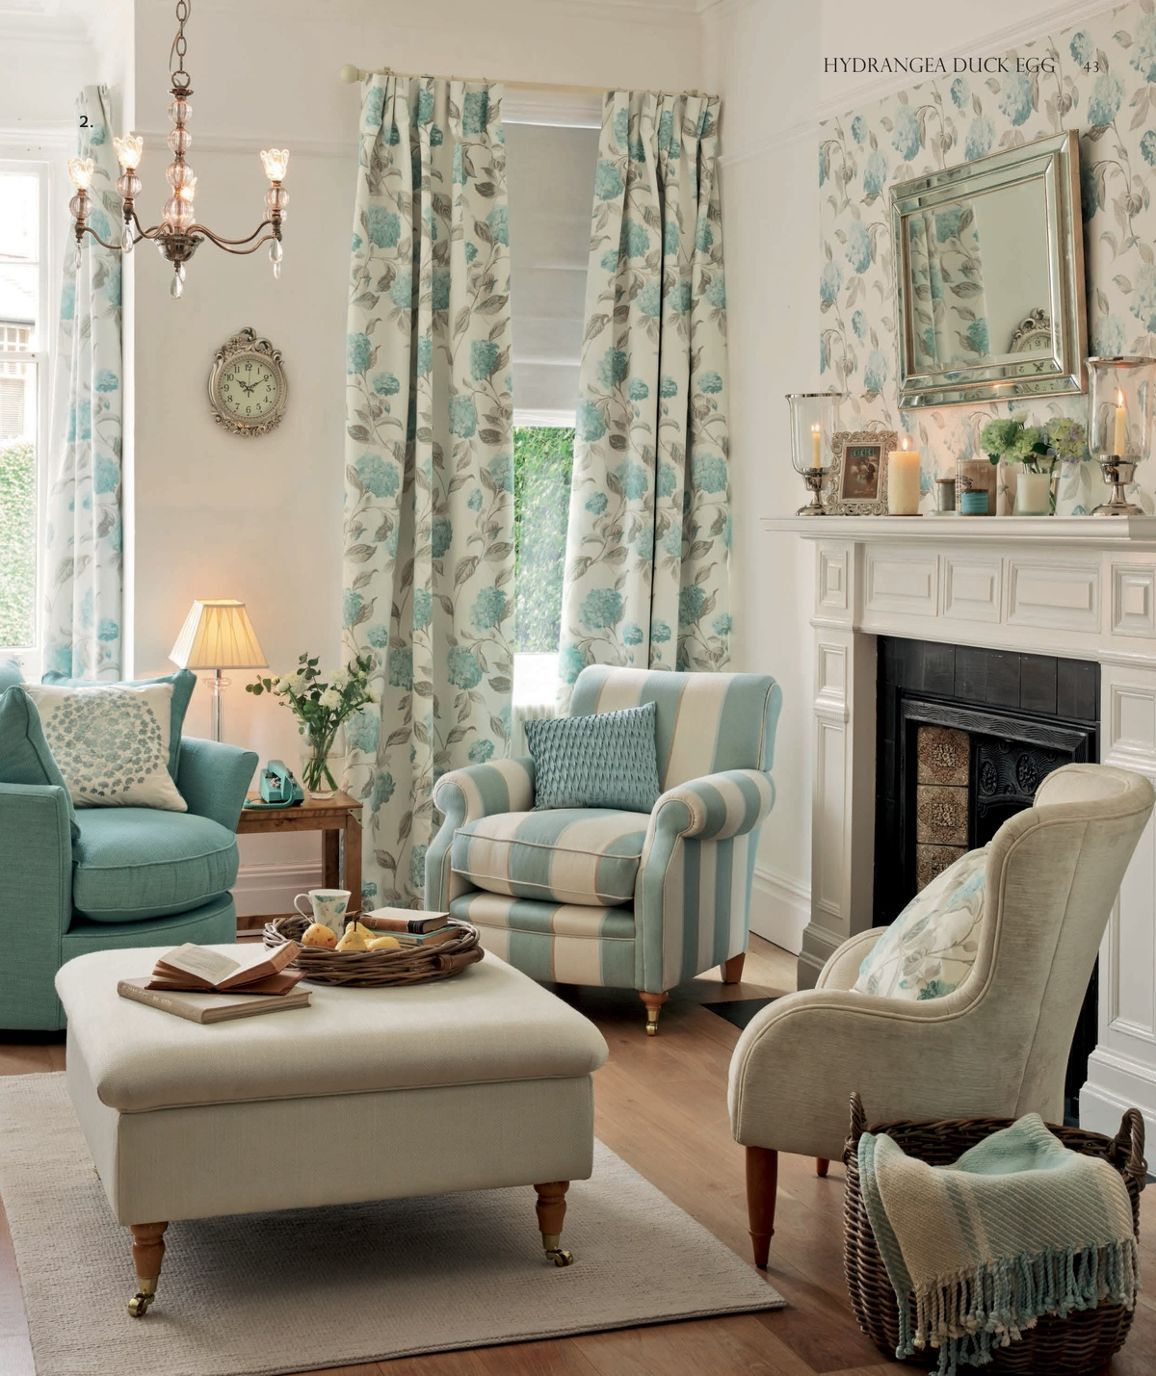 Laura Ashley Love This Living Room The Colors Are So Peaceful And Comforting